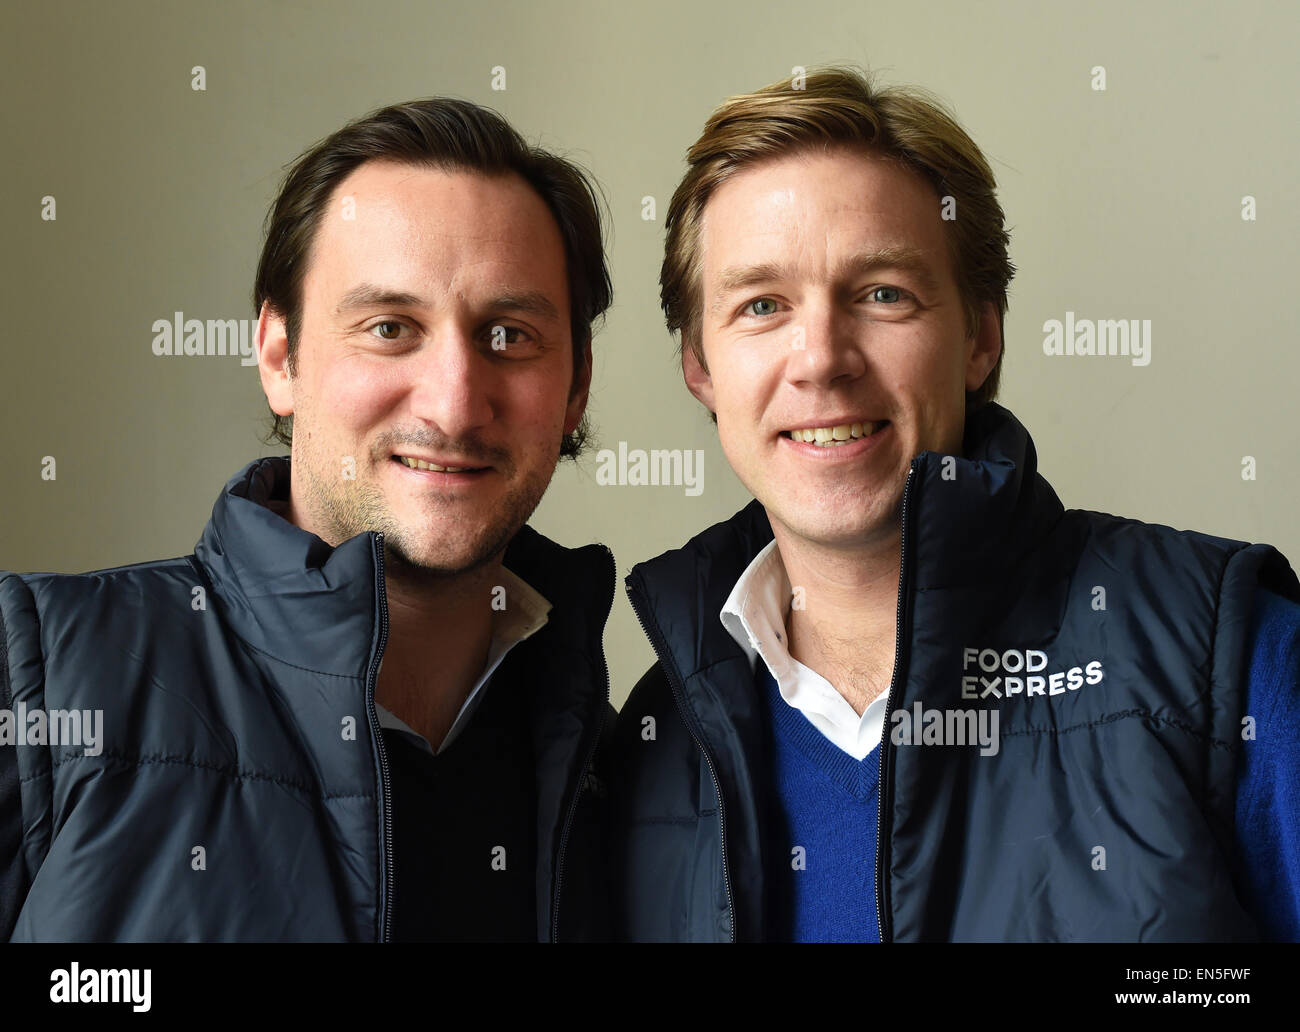 Berlin, Germany. 17th Apr, 2015. Founder and CEOs of Food Express Benjamin Pochhammer (L) and Max von Waldenfels - Stock Image